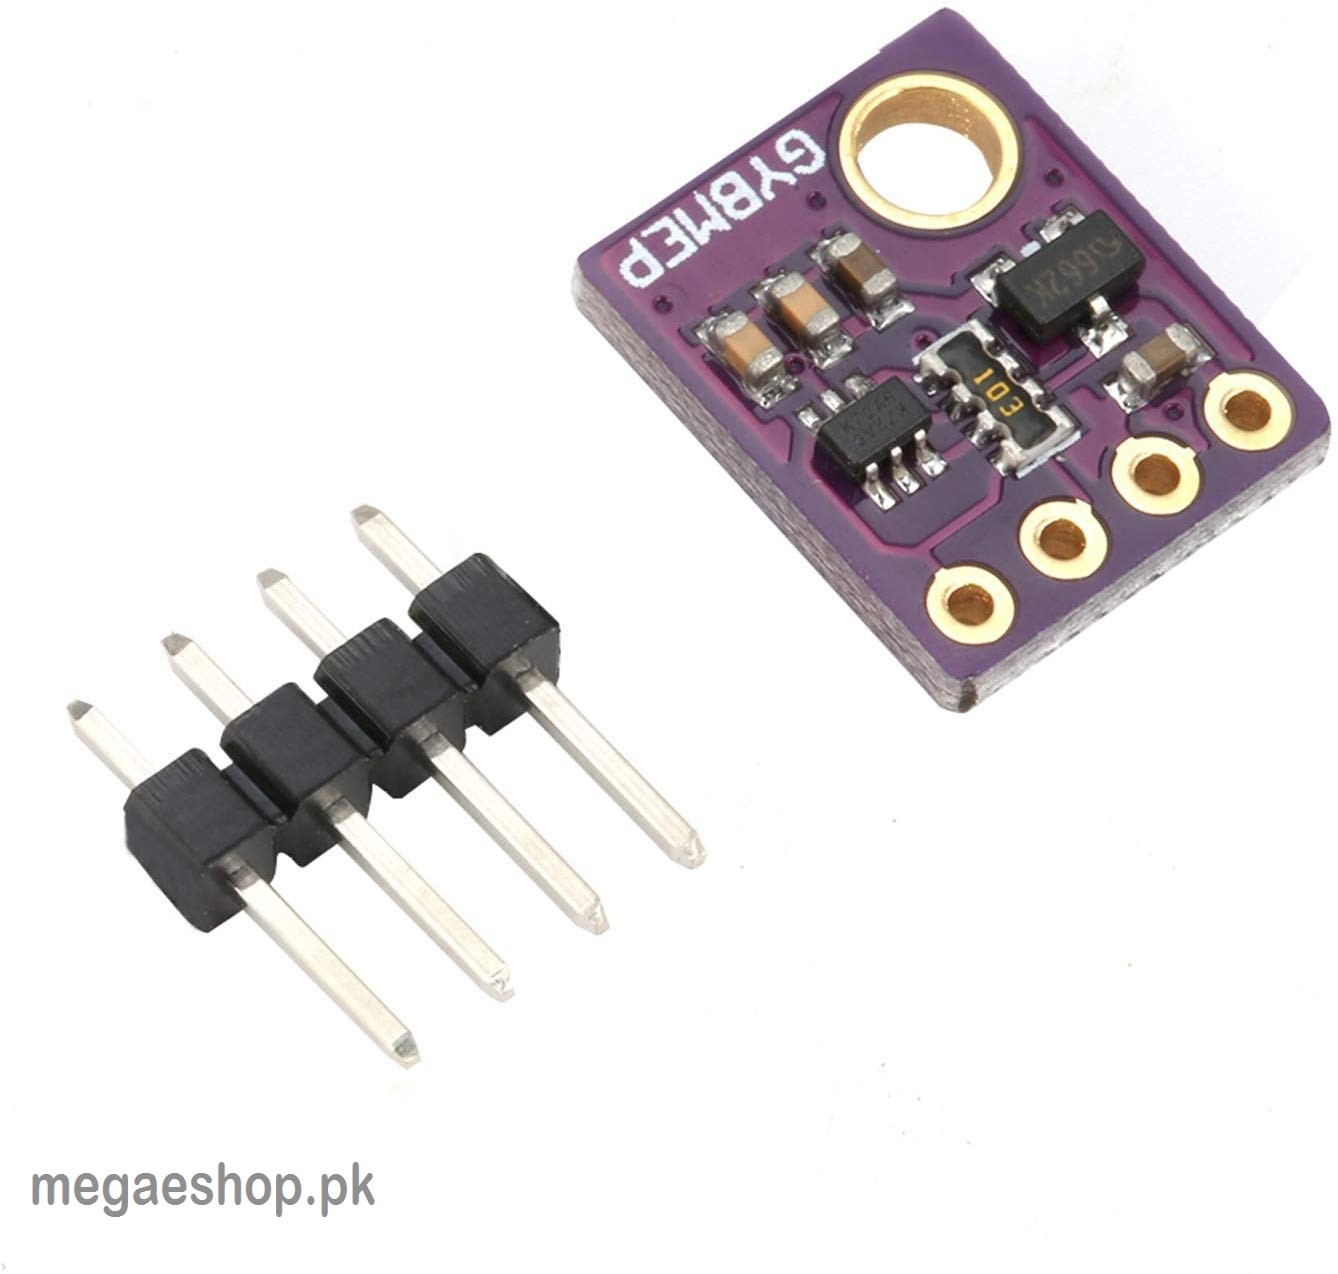 GY-BME280 5V temperature and humidity sensor module for atmospheric pressure sensor module